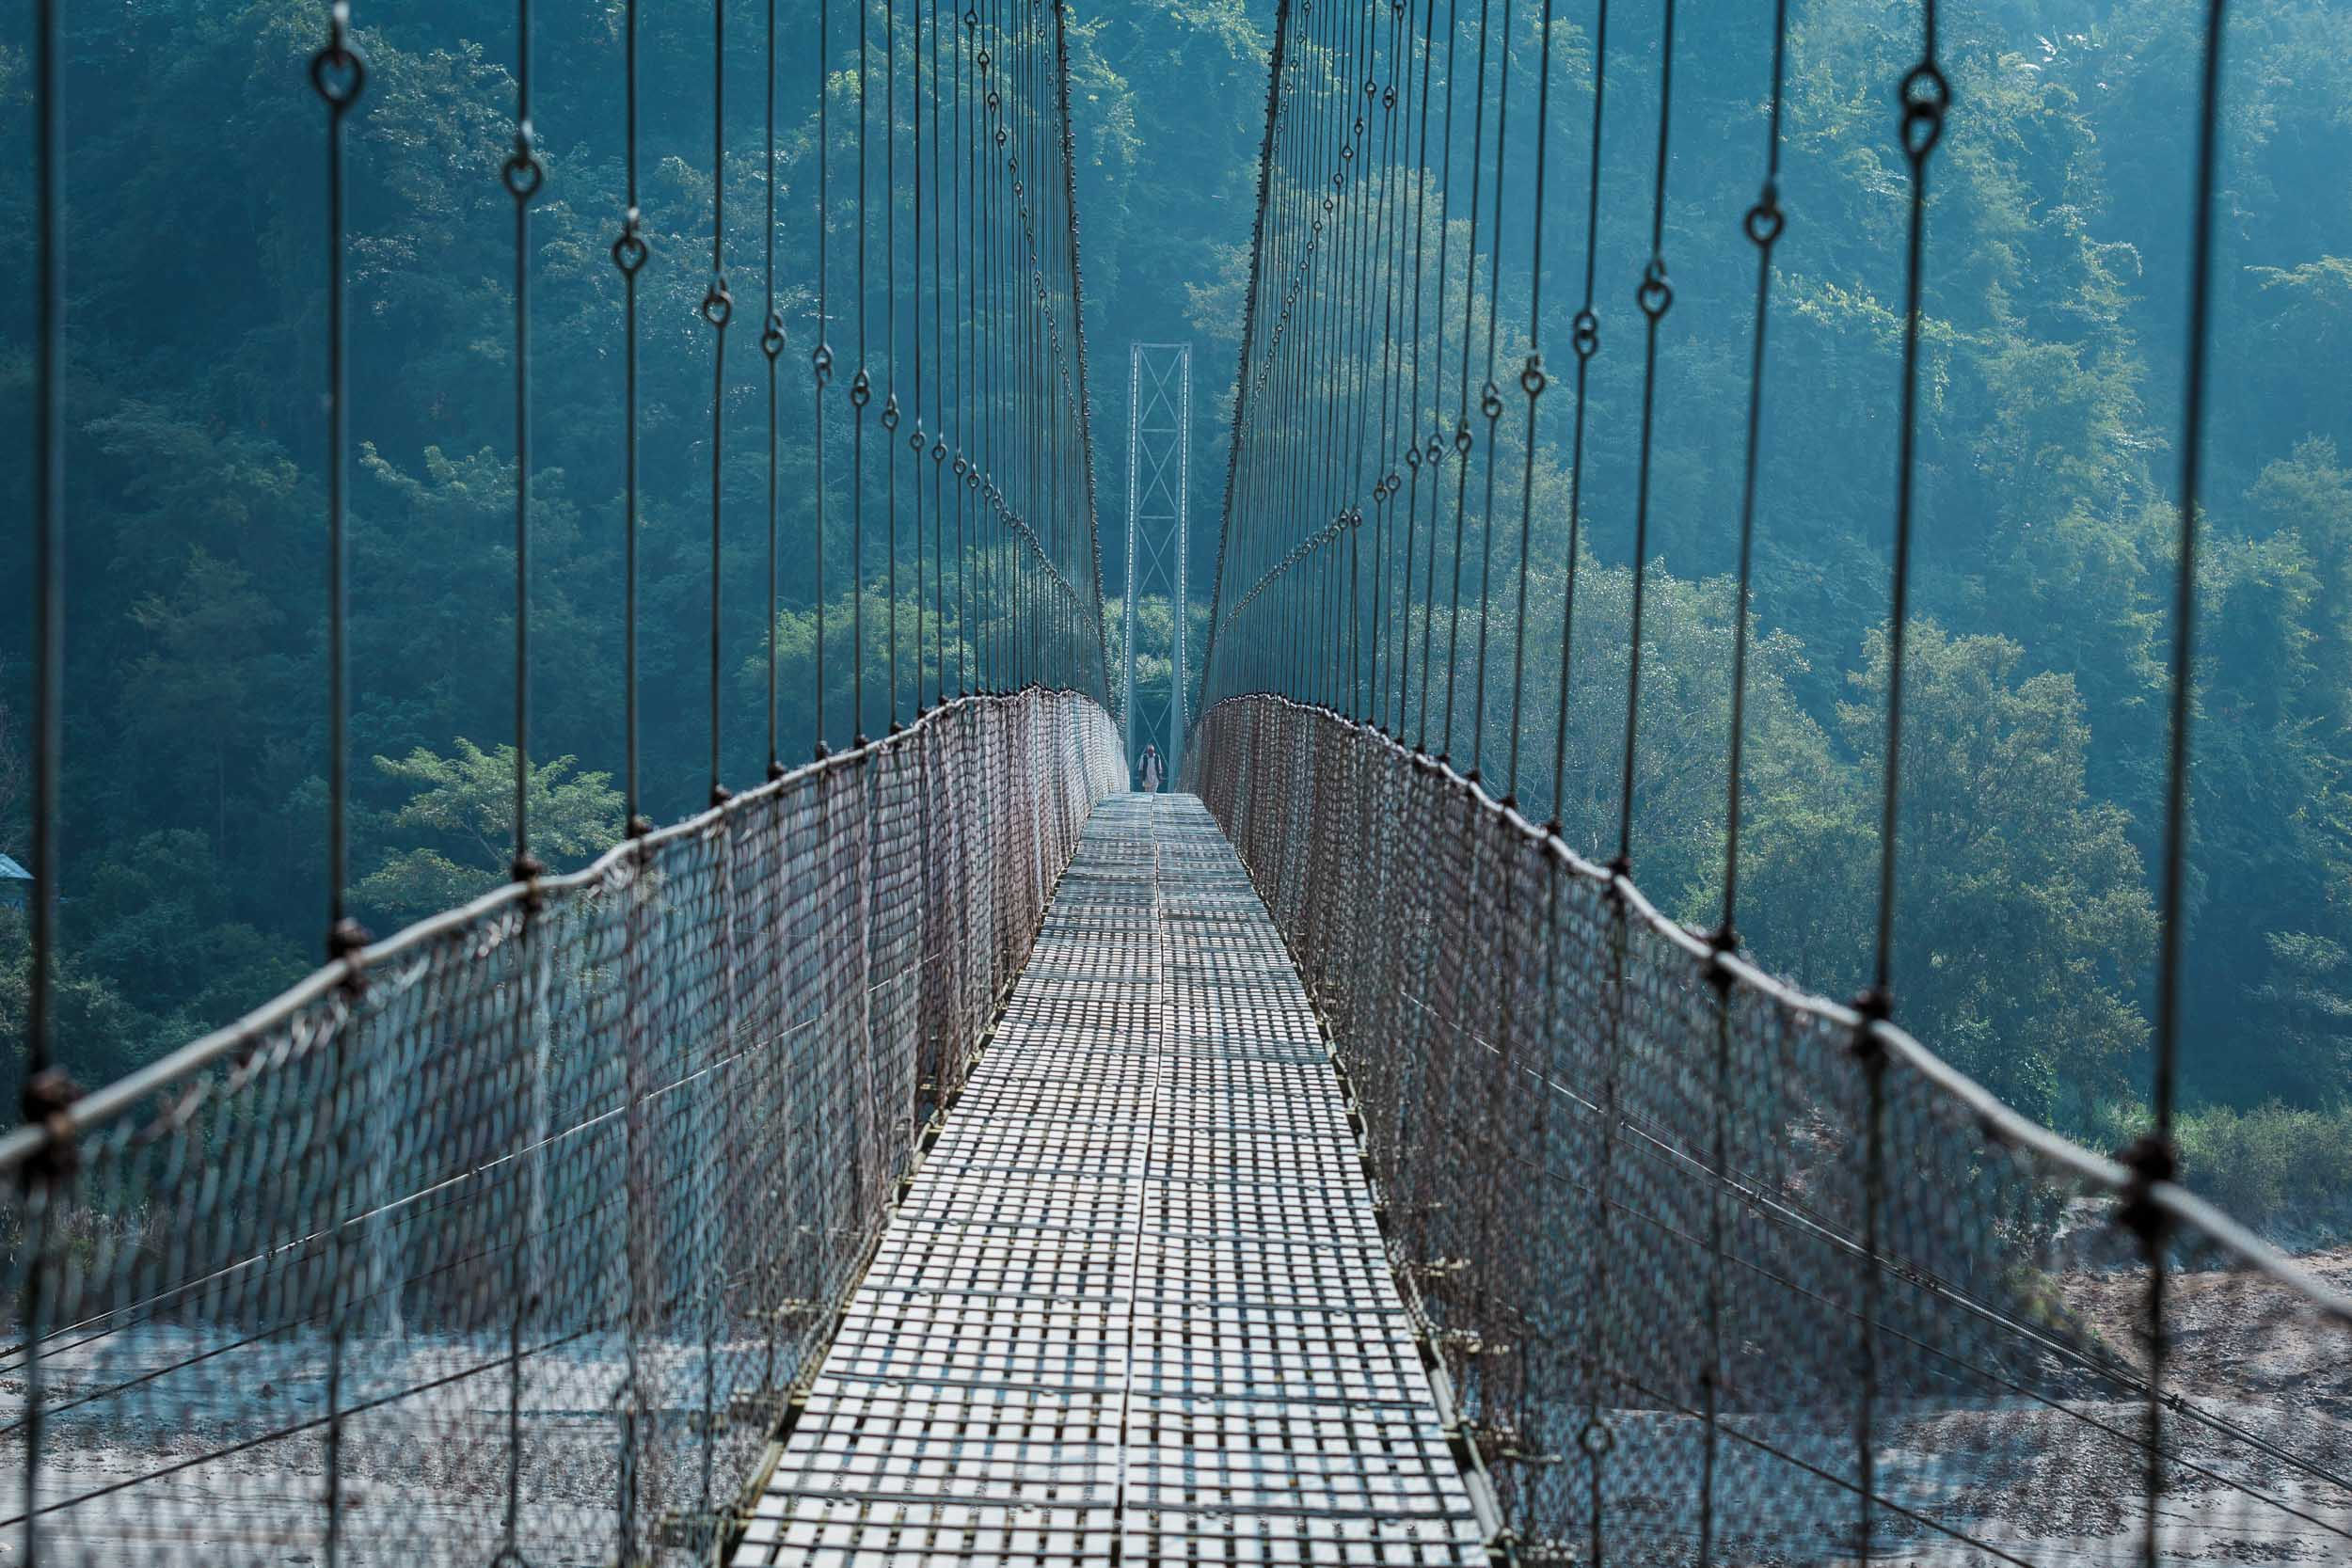 Rope bridge over the Kali Gandaki River.